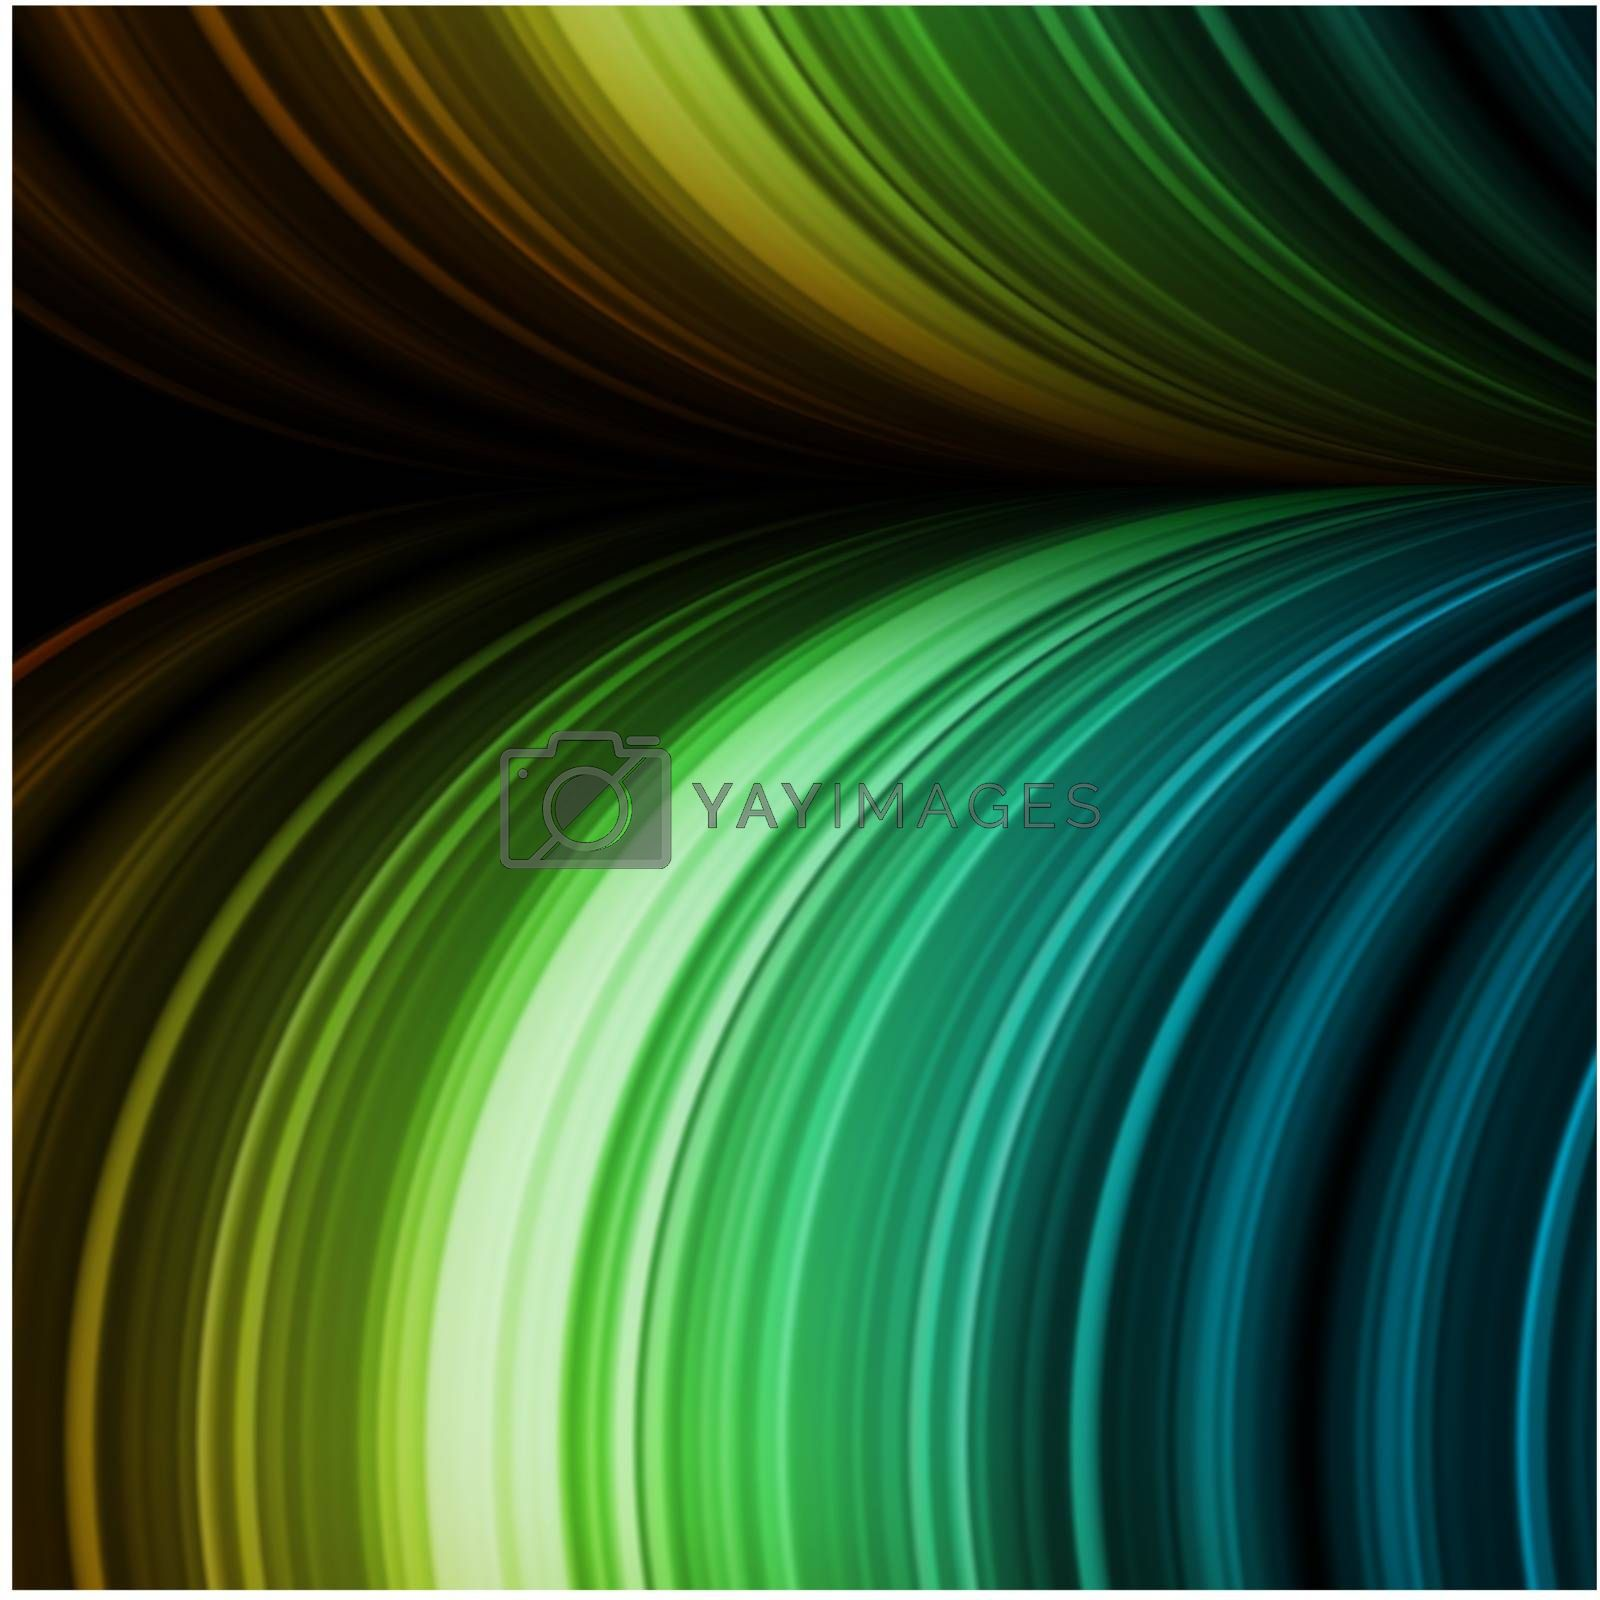 Royalty free image of Fully editable colorful abstract background, EPS 8 by Petrov_Vladimir